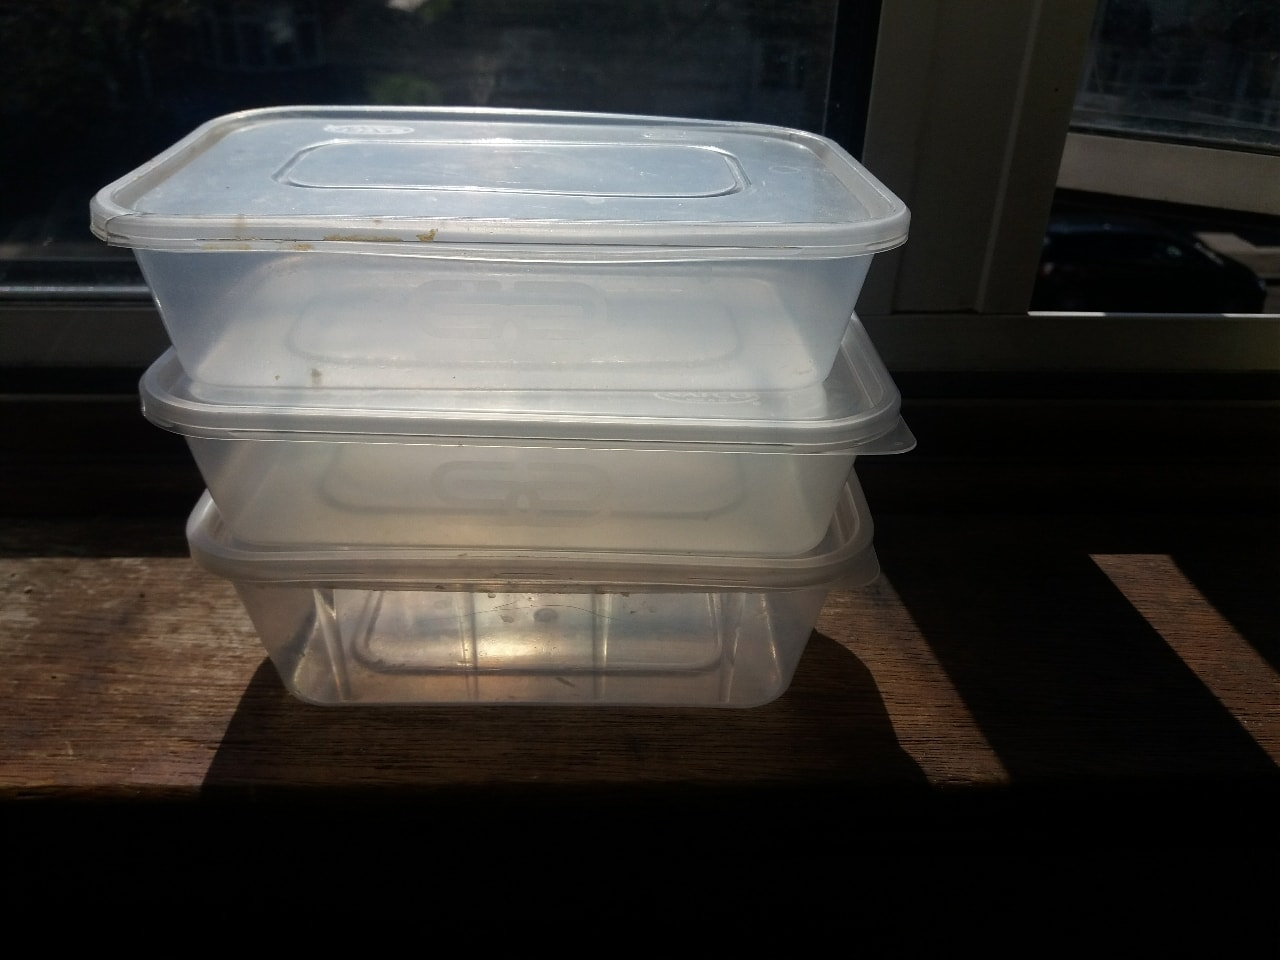 3 small plastic boxes